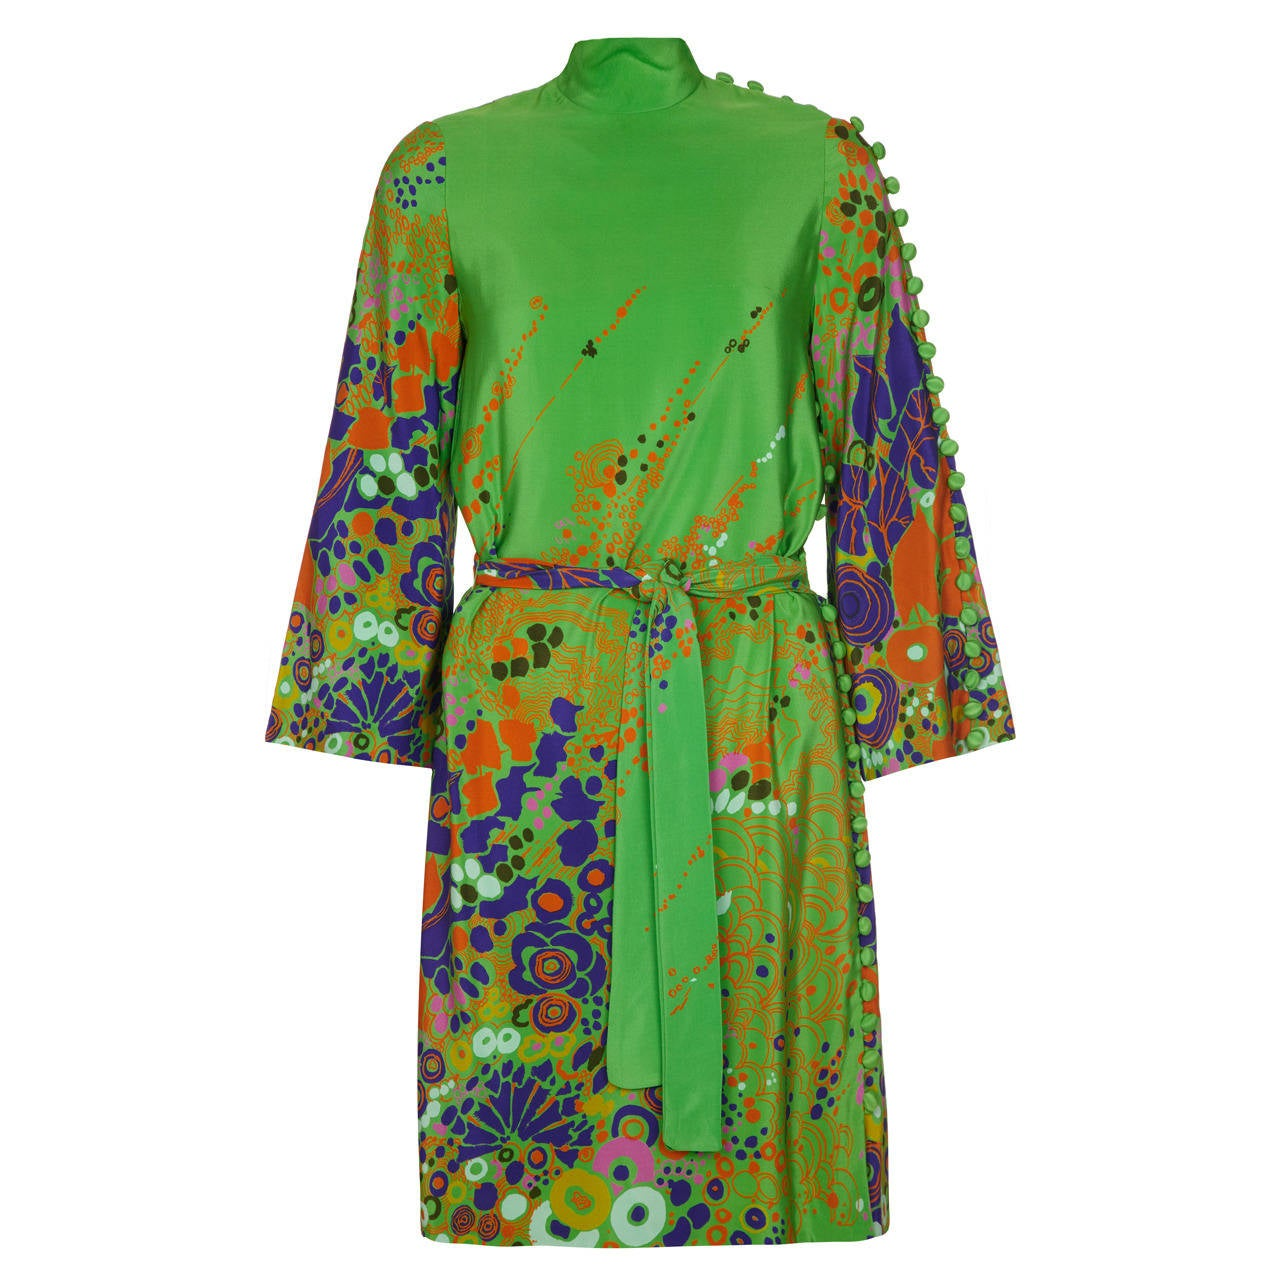 1960s Floral Print Green Dress With Button Detail 1